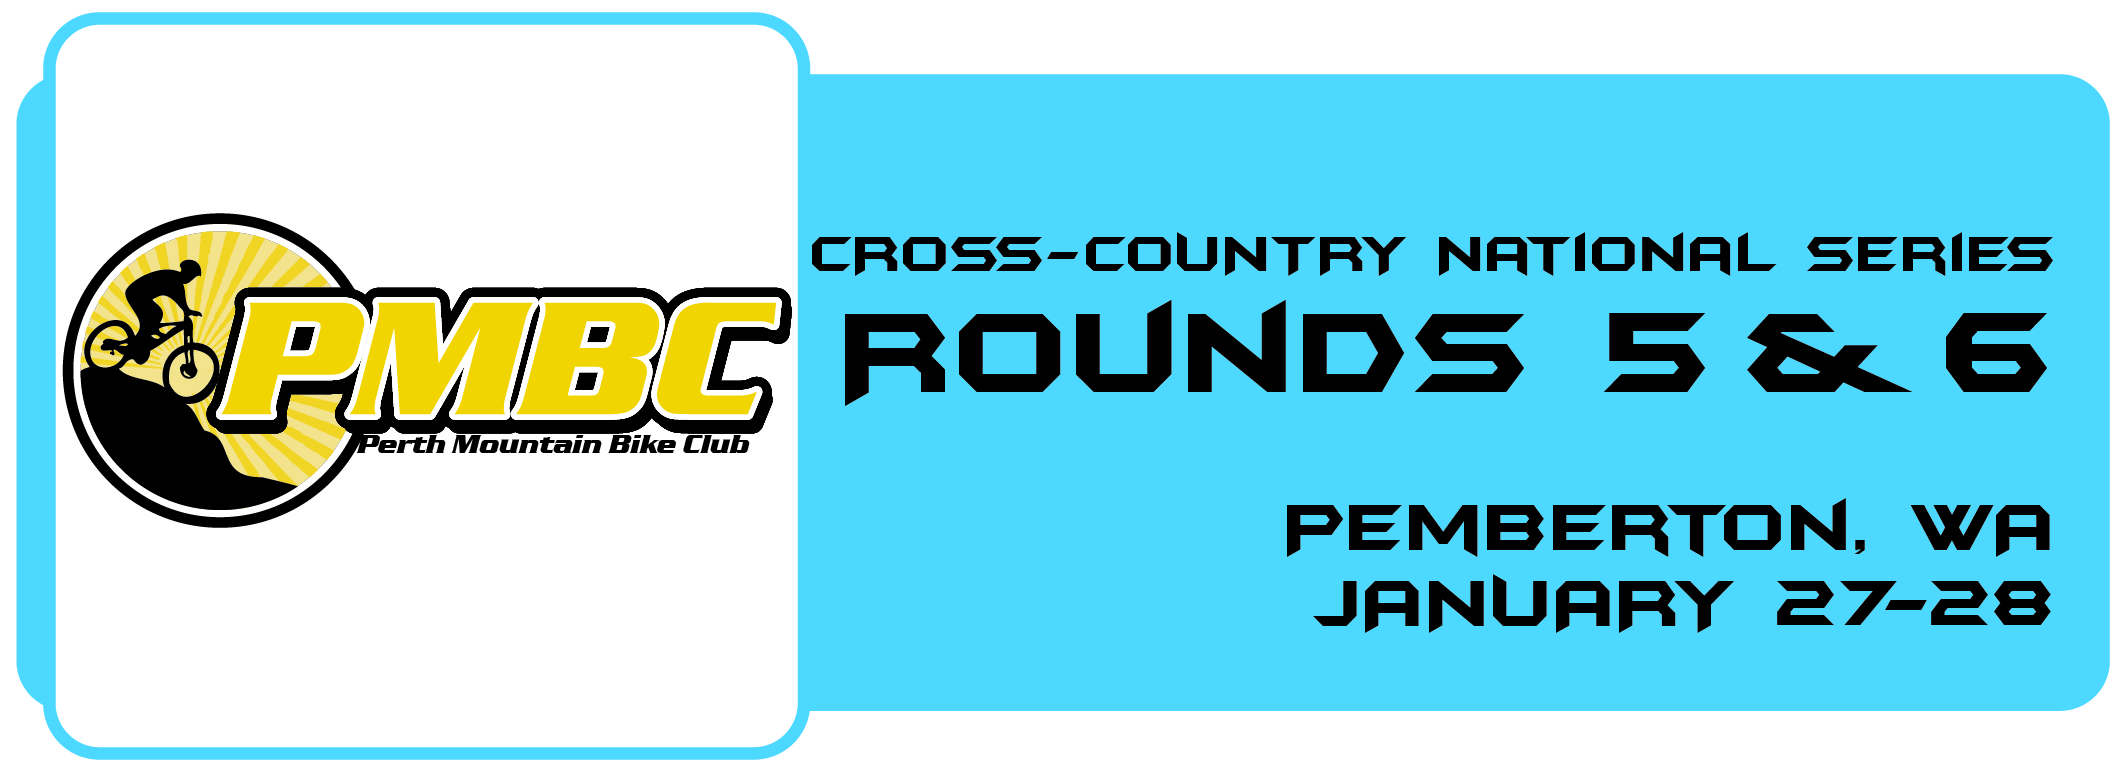 Cross-Country NS - Round 5 & 6 Button - Perth